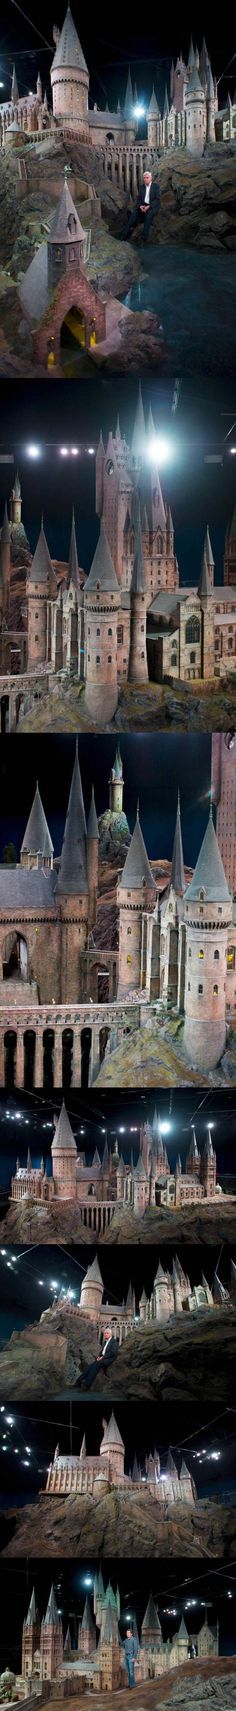 Incredible look at the real Hogwarts Castle in England at Warner Brothers Studio Tour London.